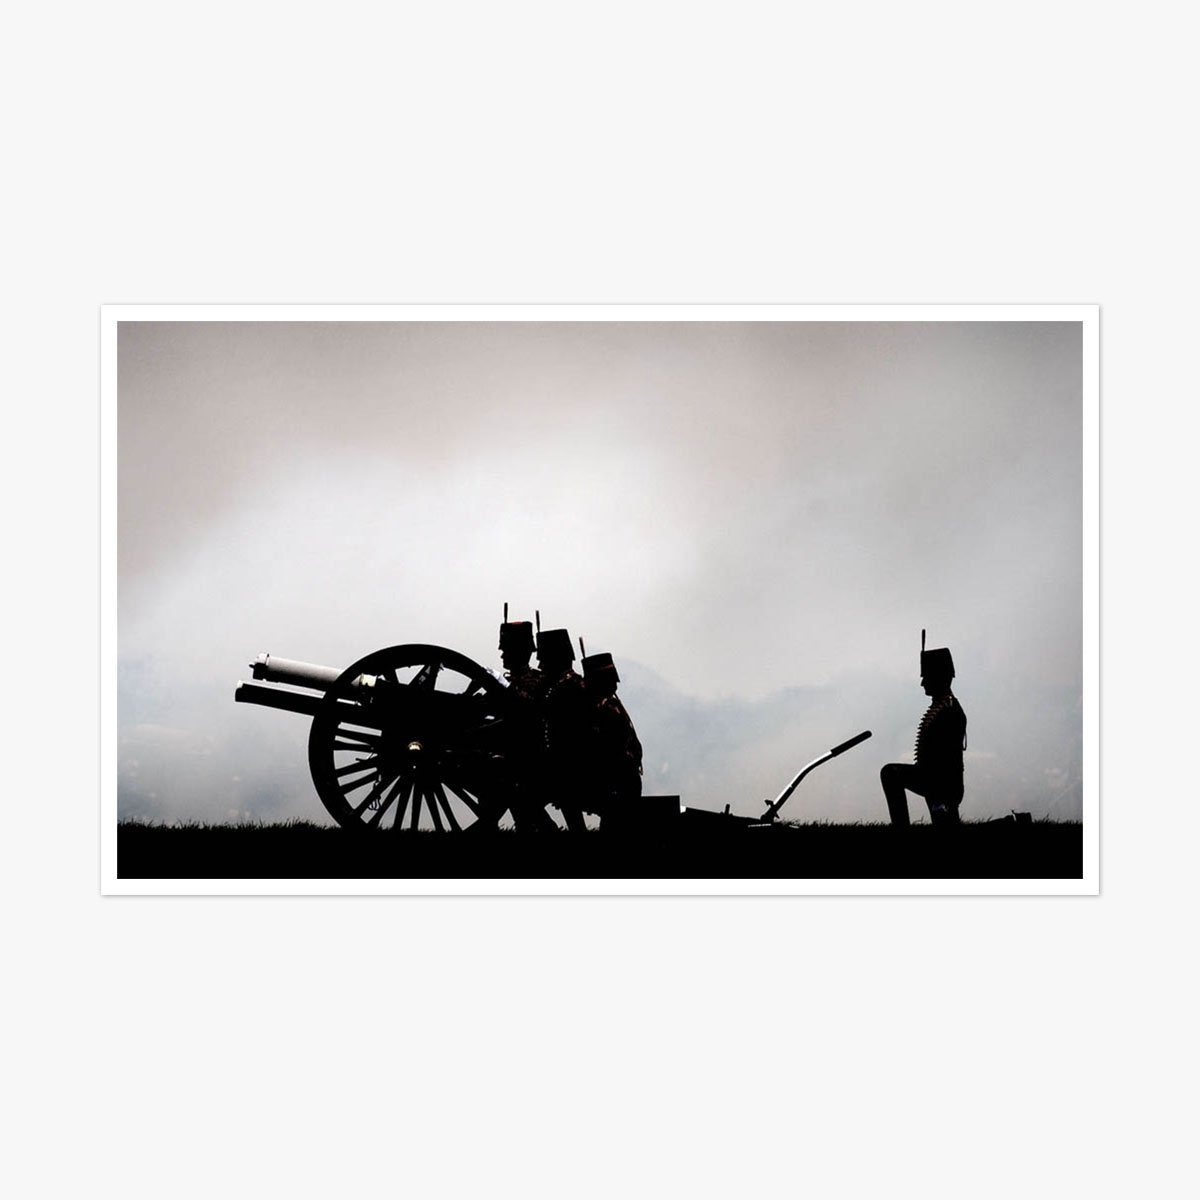 41 Gun Salute by Andy Paradise